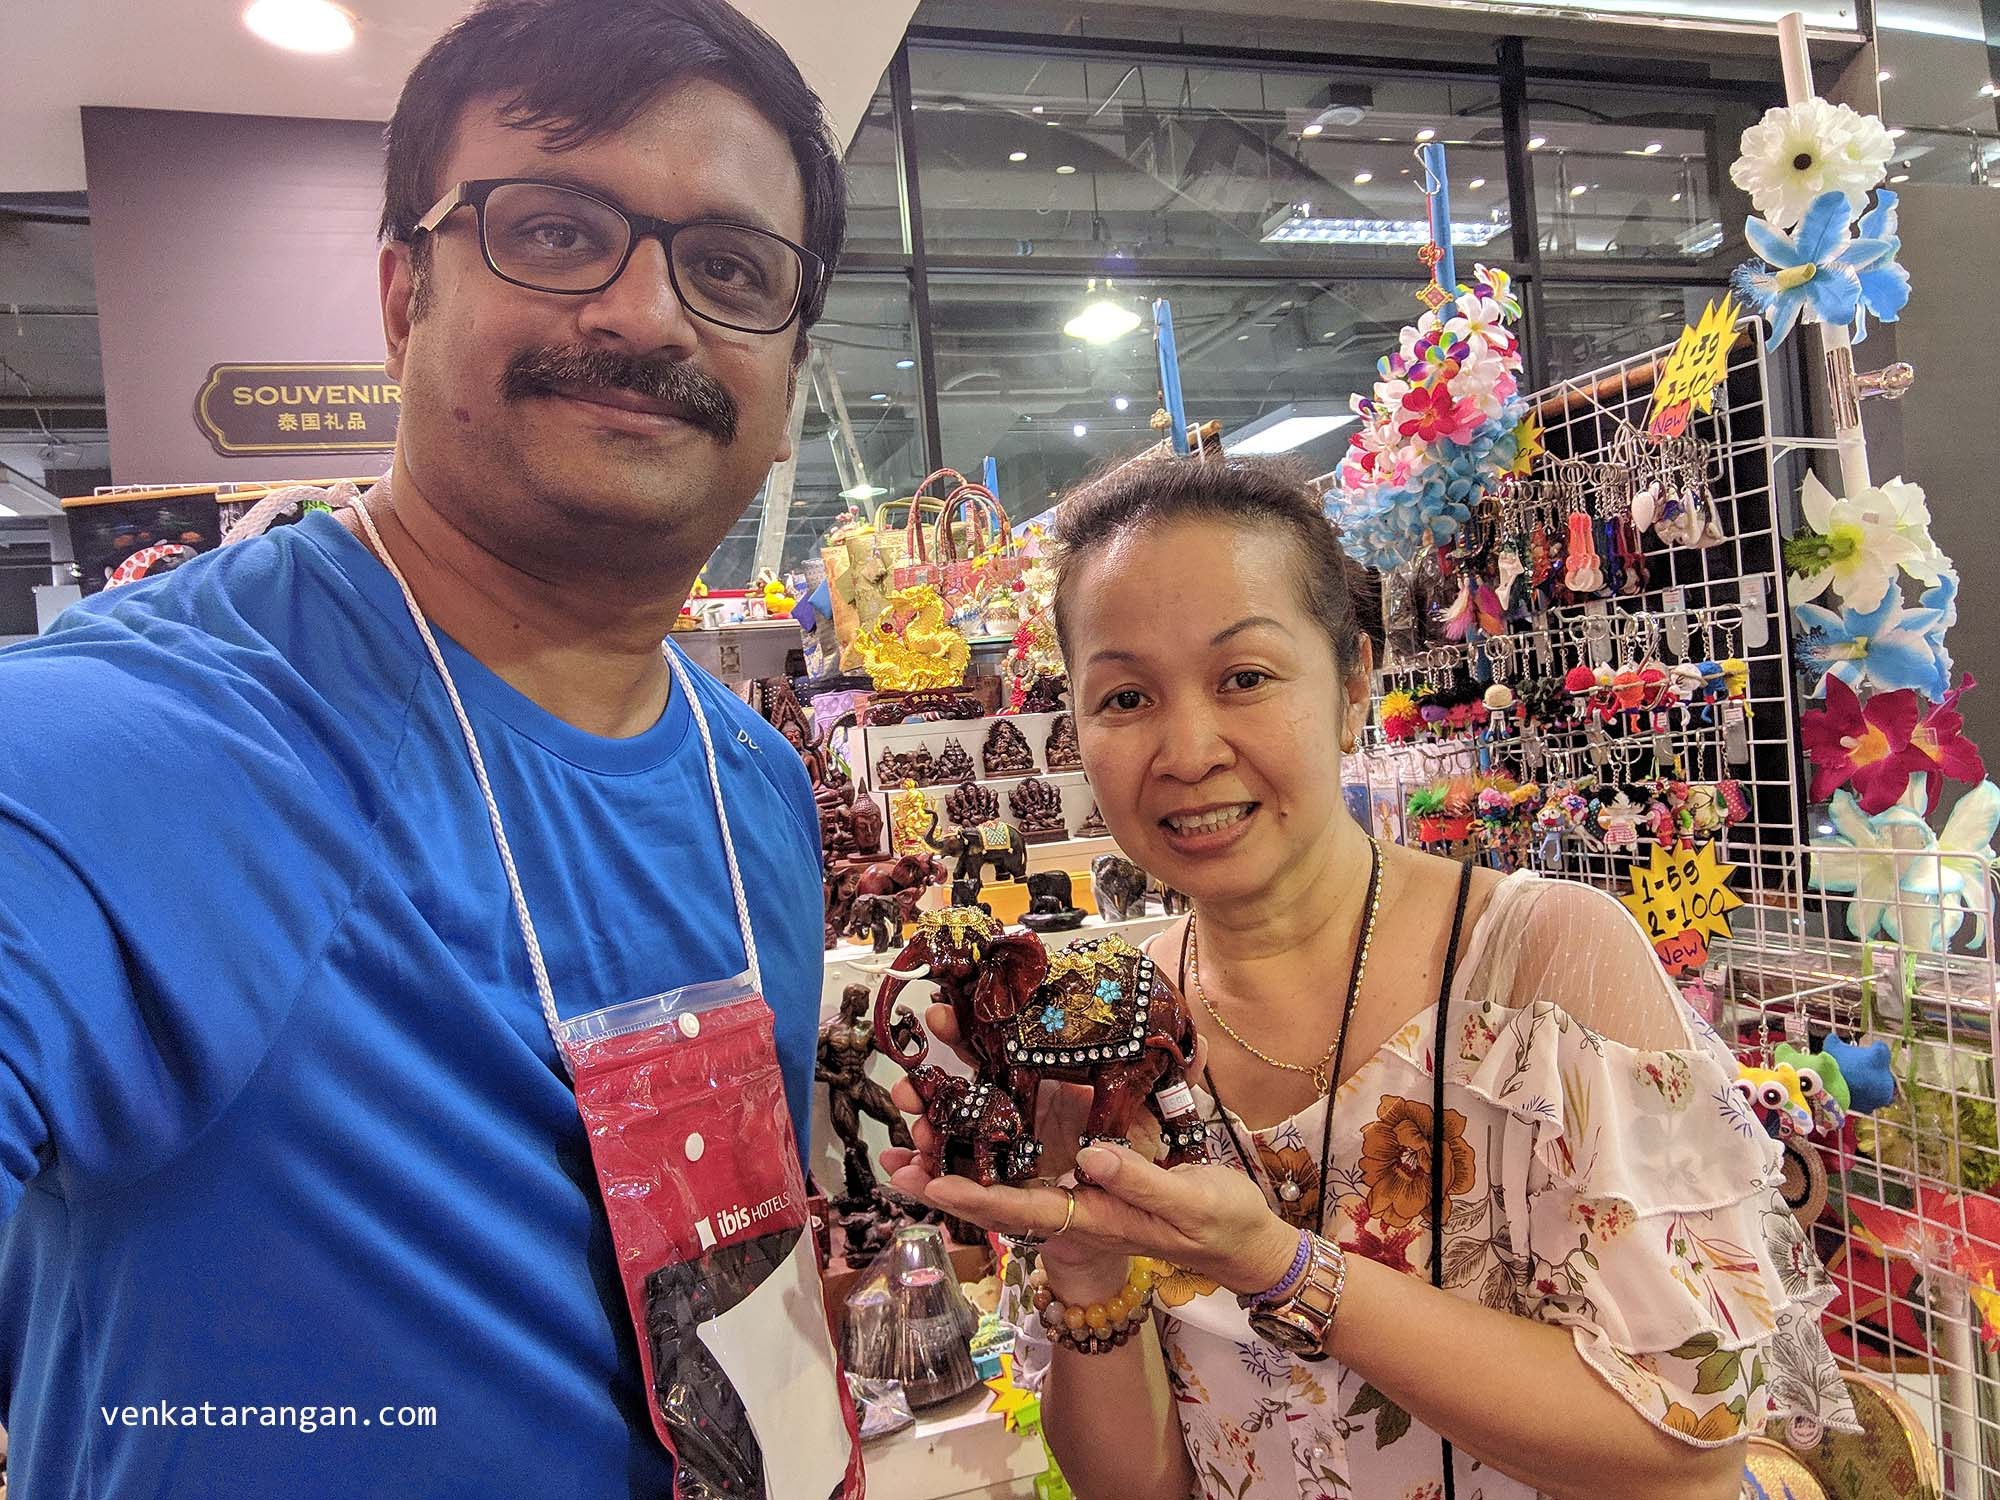 The happy shopkeeper at Mike's Shopping Mall, Pattaya who asked for a selfie with me after I bought an Elephant Model - These are the pleasant experiences you wish in a travel!